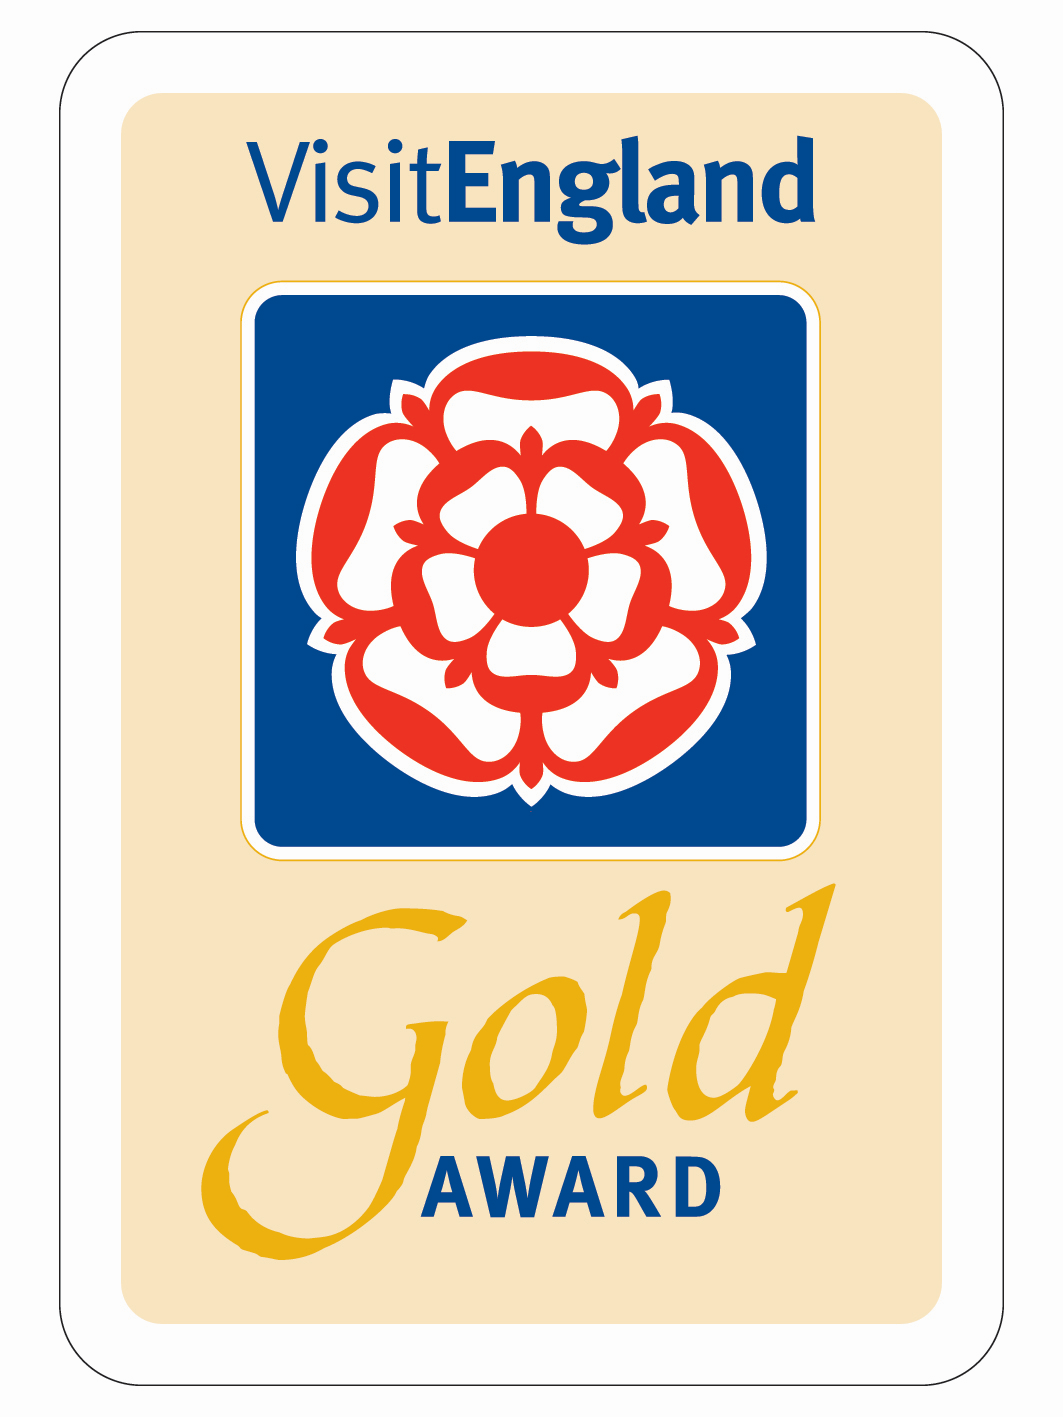 enjoyengland gold award 2016